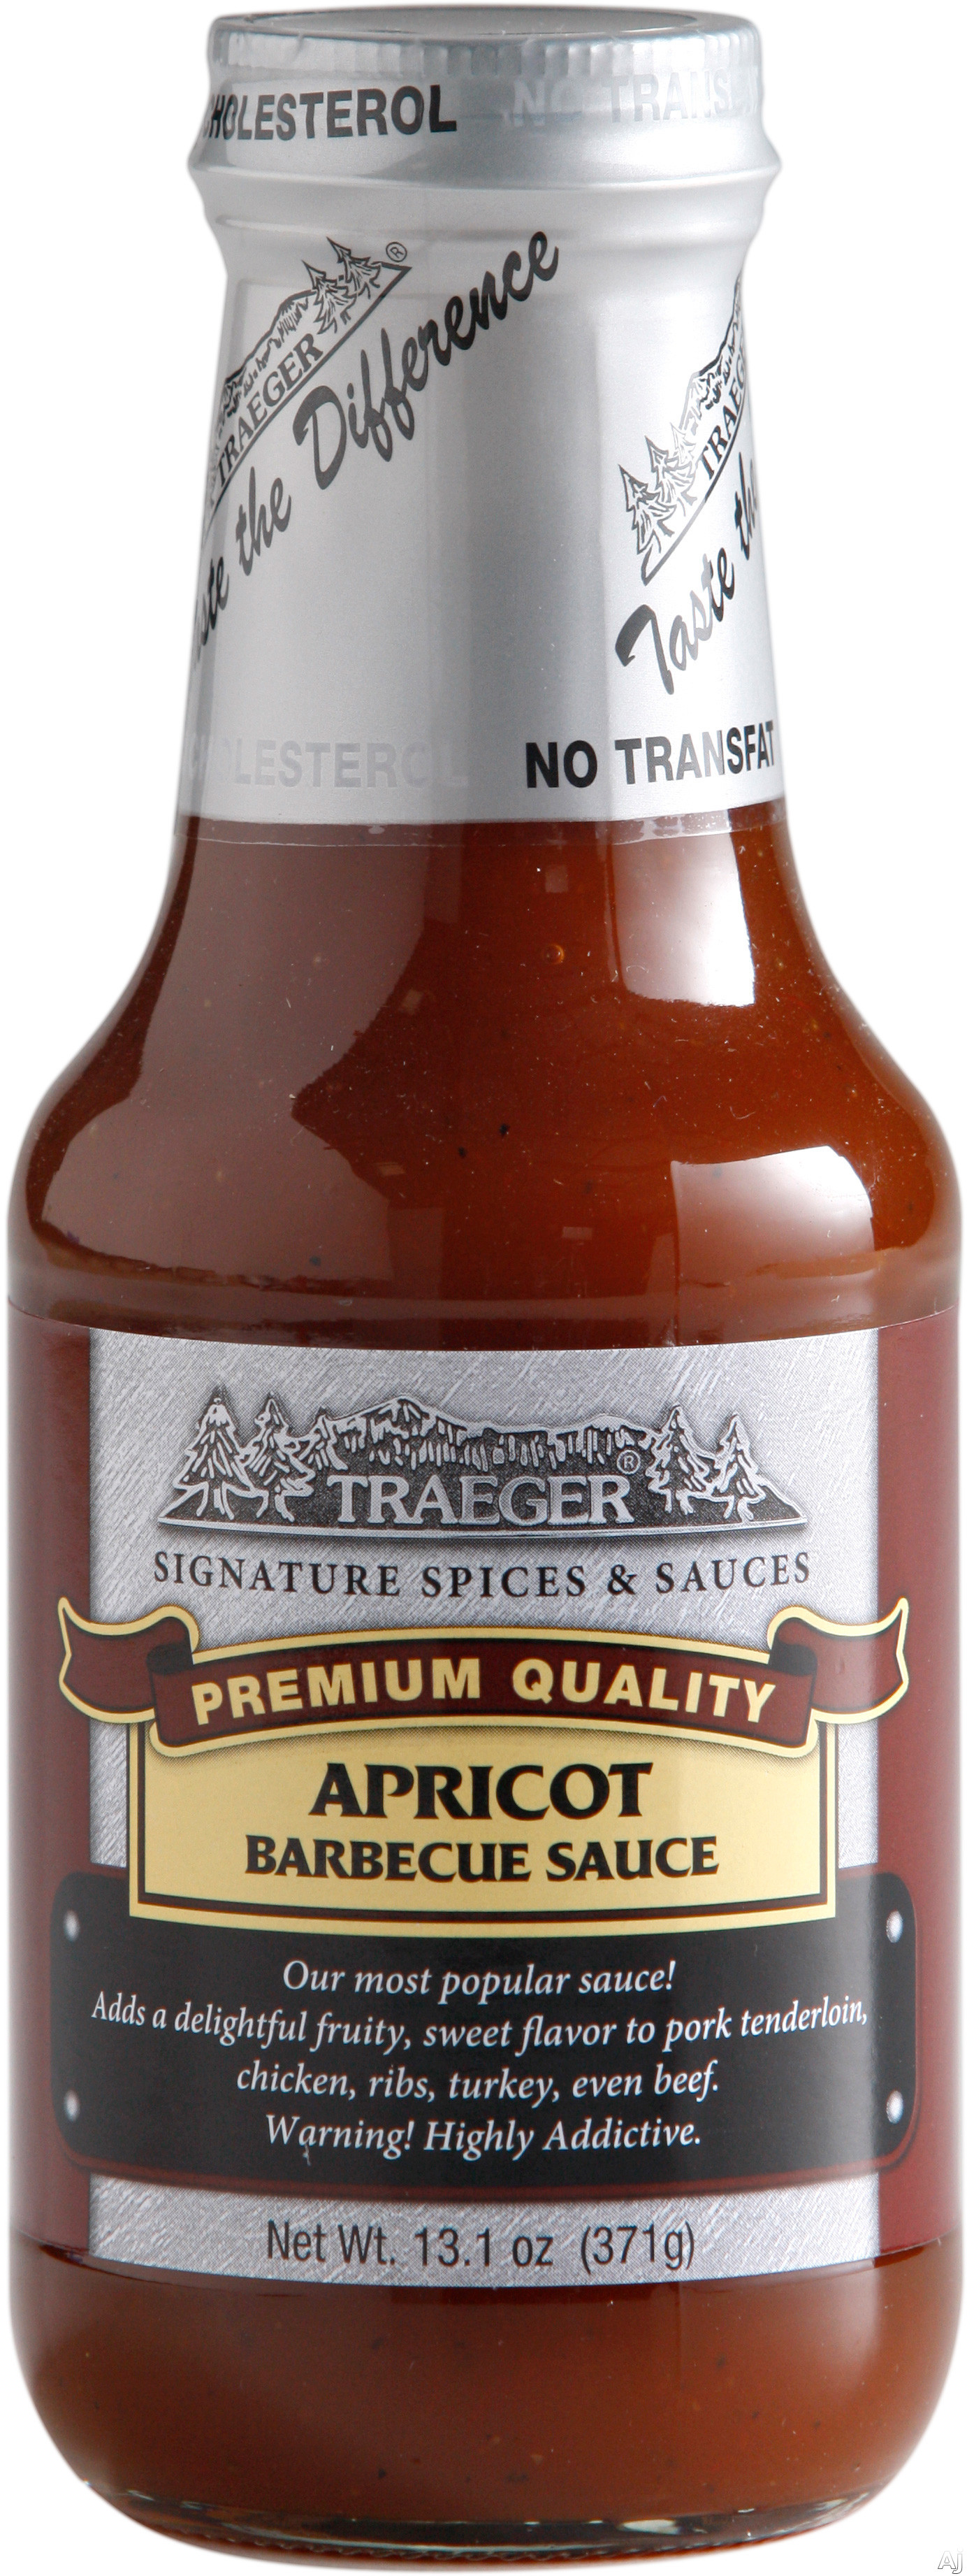 Picture for category Barbecue Sauces